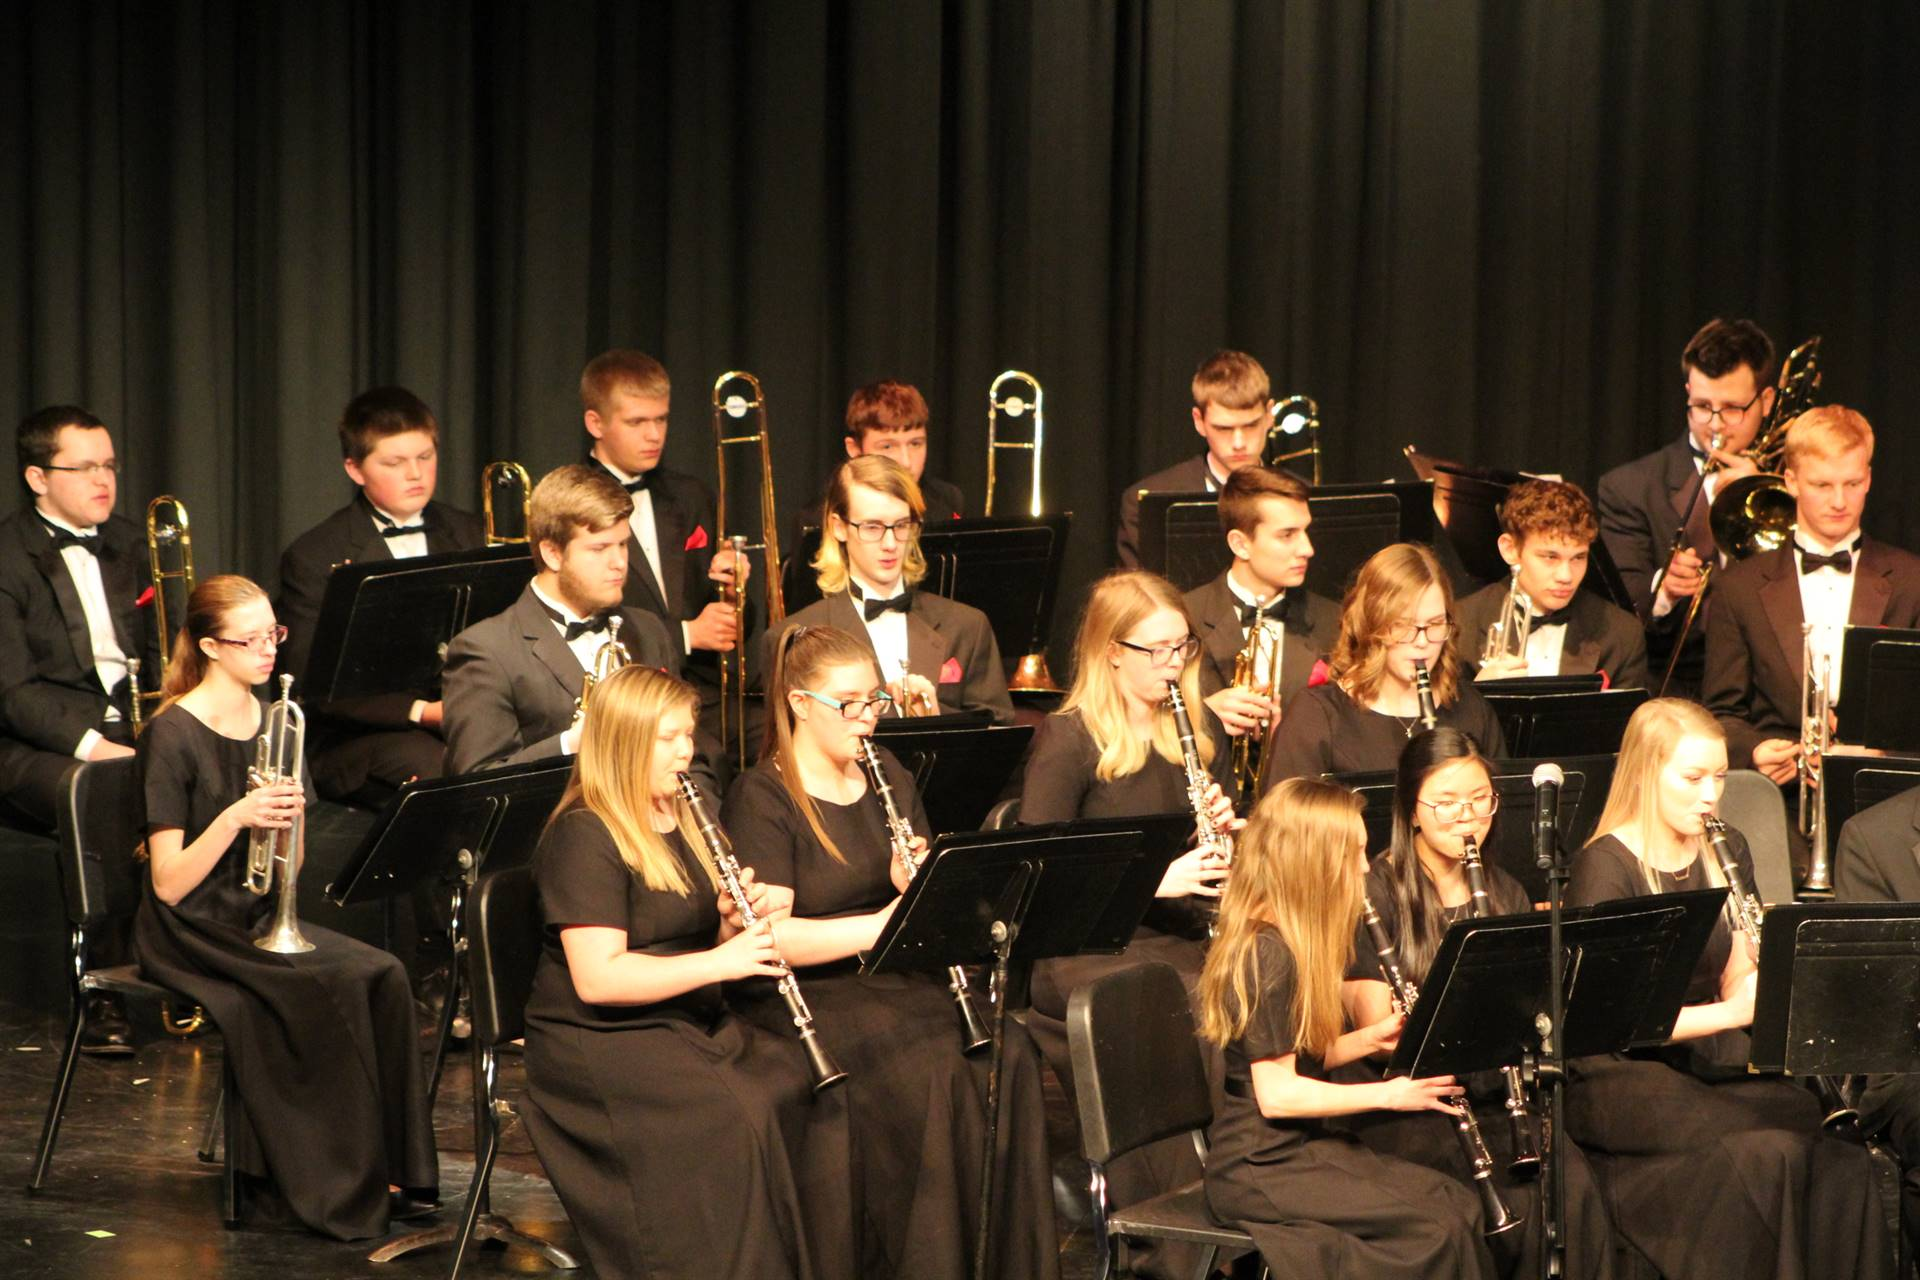 High school concert band students performing on stage